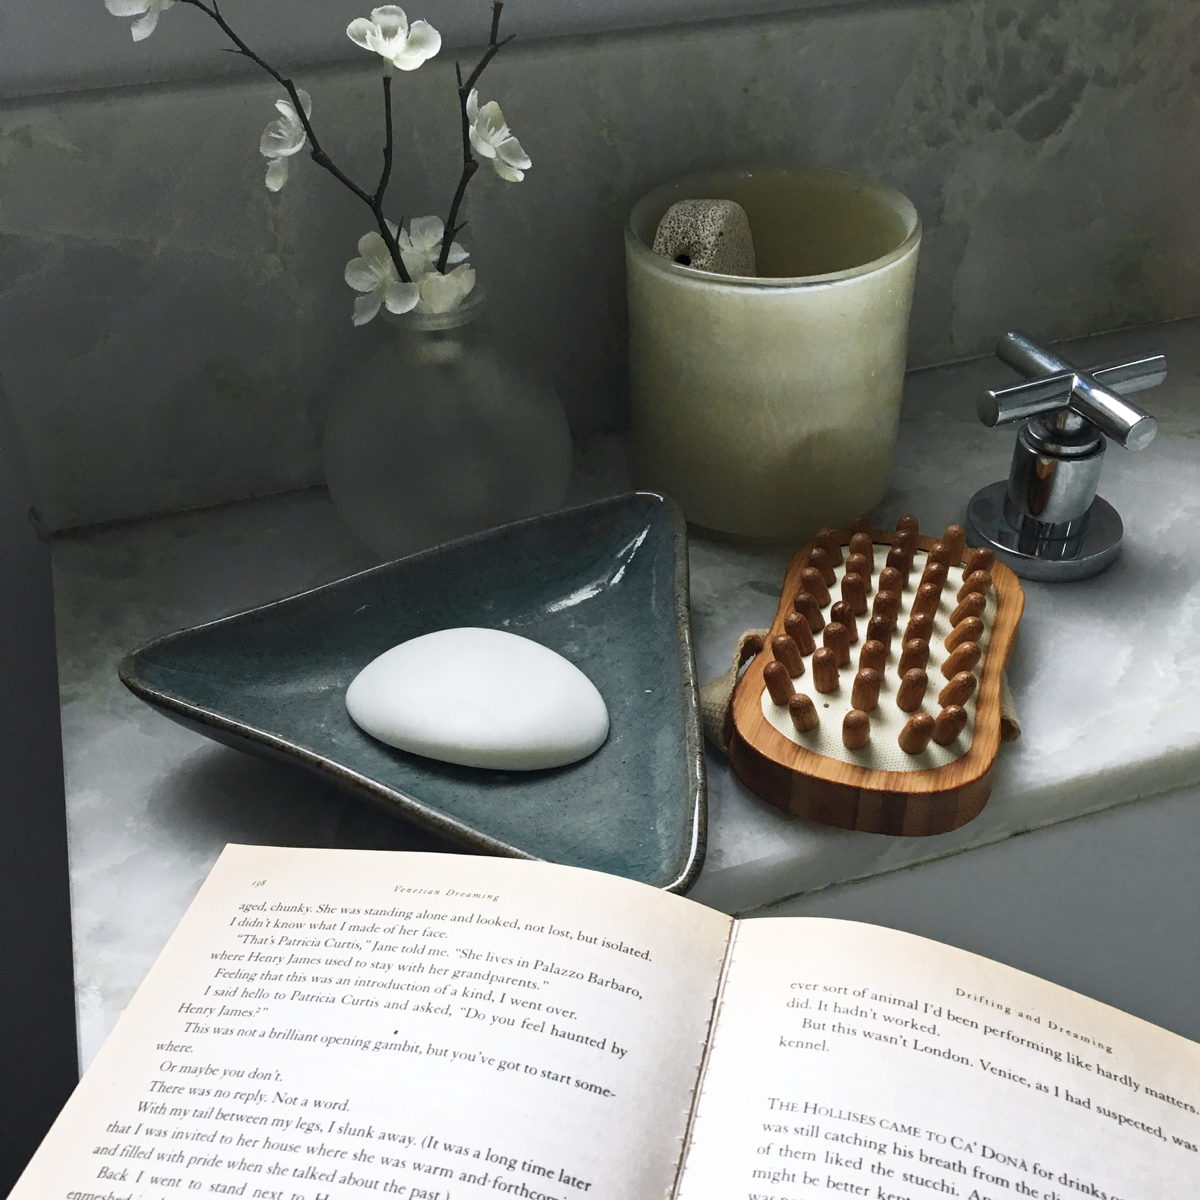 Bathtub with a bar of soap and a book